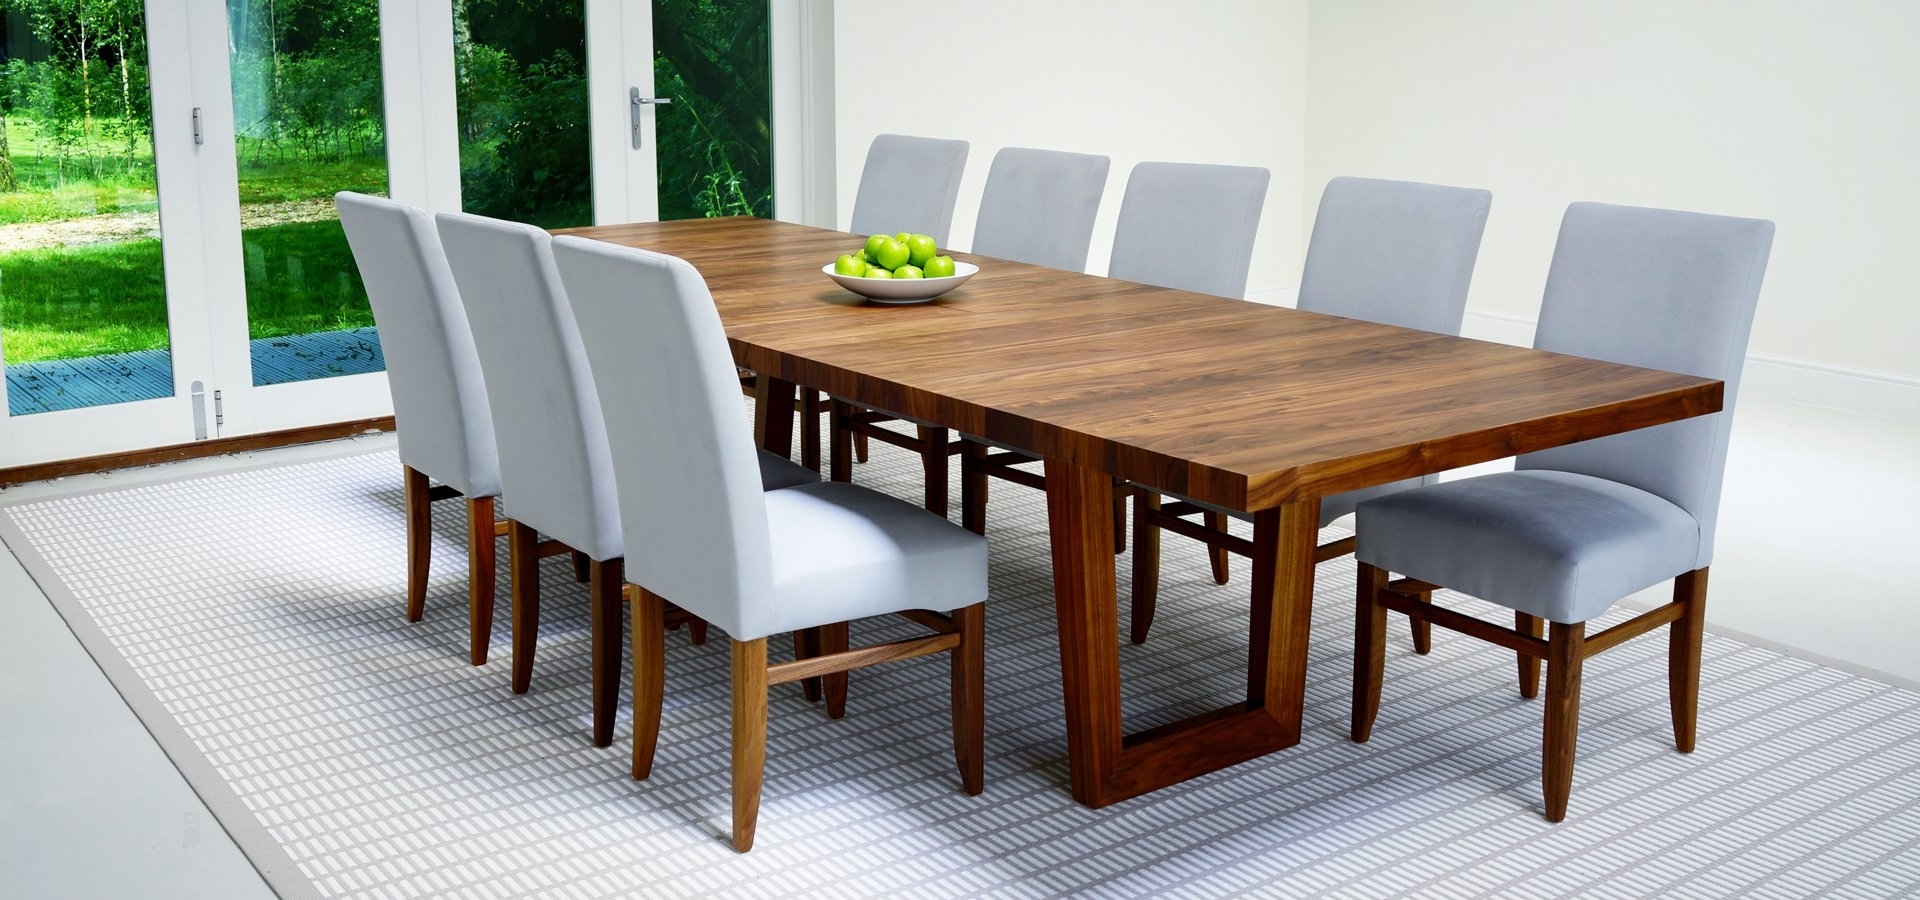 Famous Extendable Dining Tables Sets Inside Modern Extendable Dining Table Set – Castrophotos (View 3 of 25)